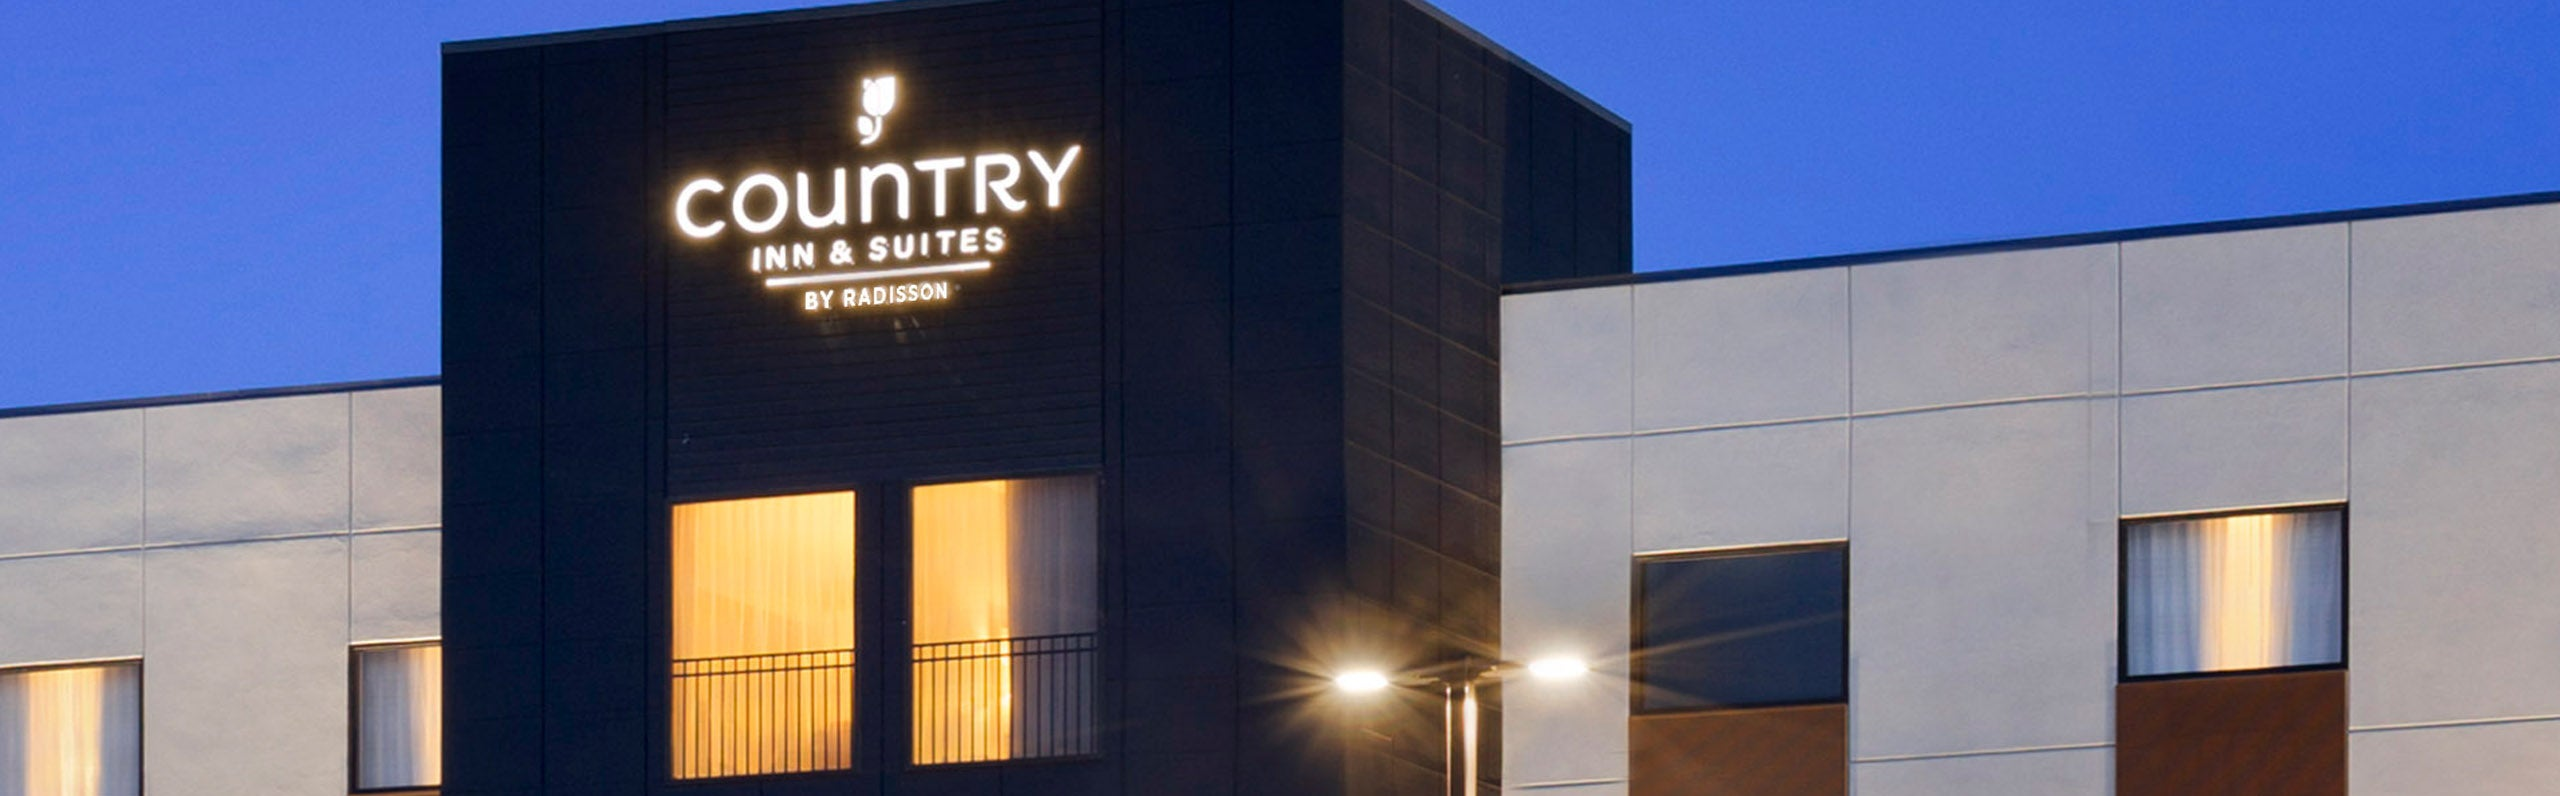 Country Inn & Suites by Carlson, Smithfield NC